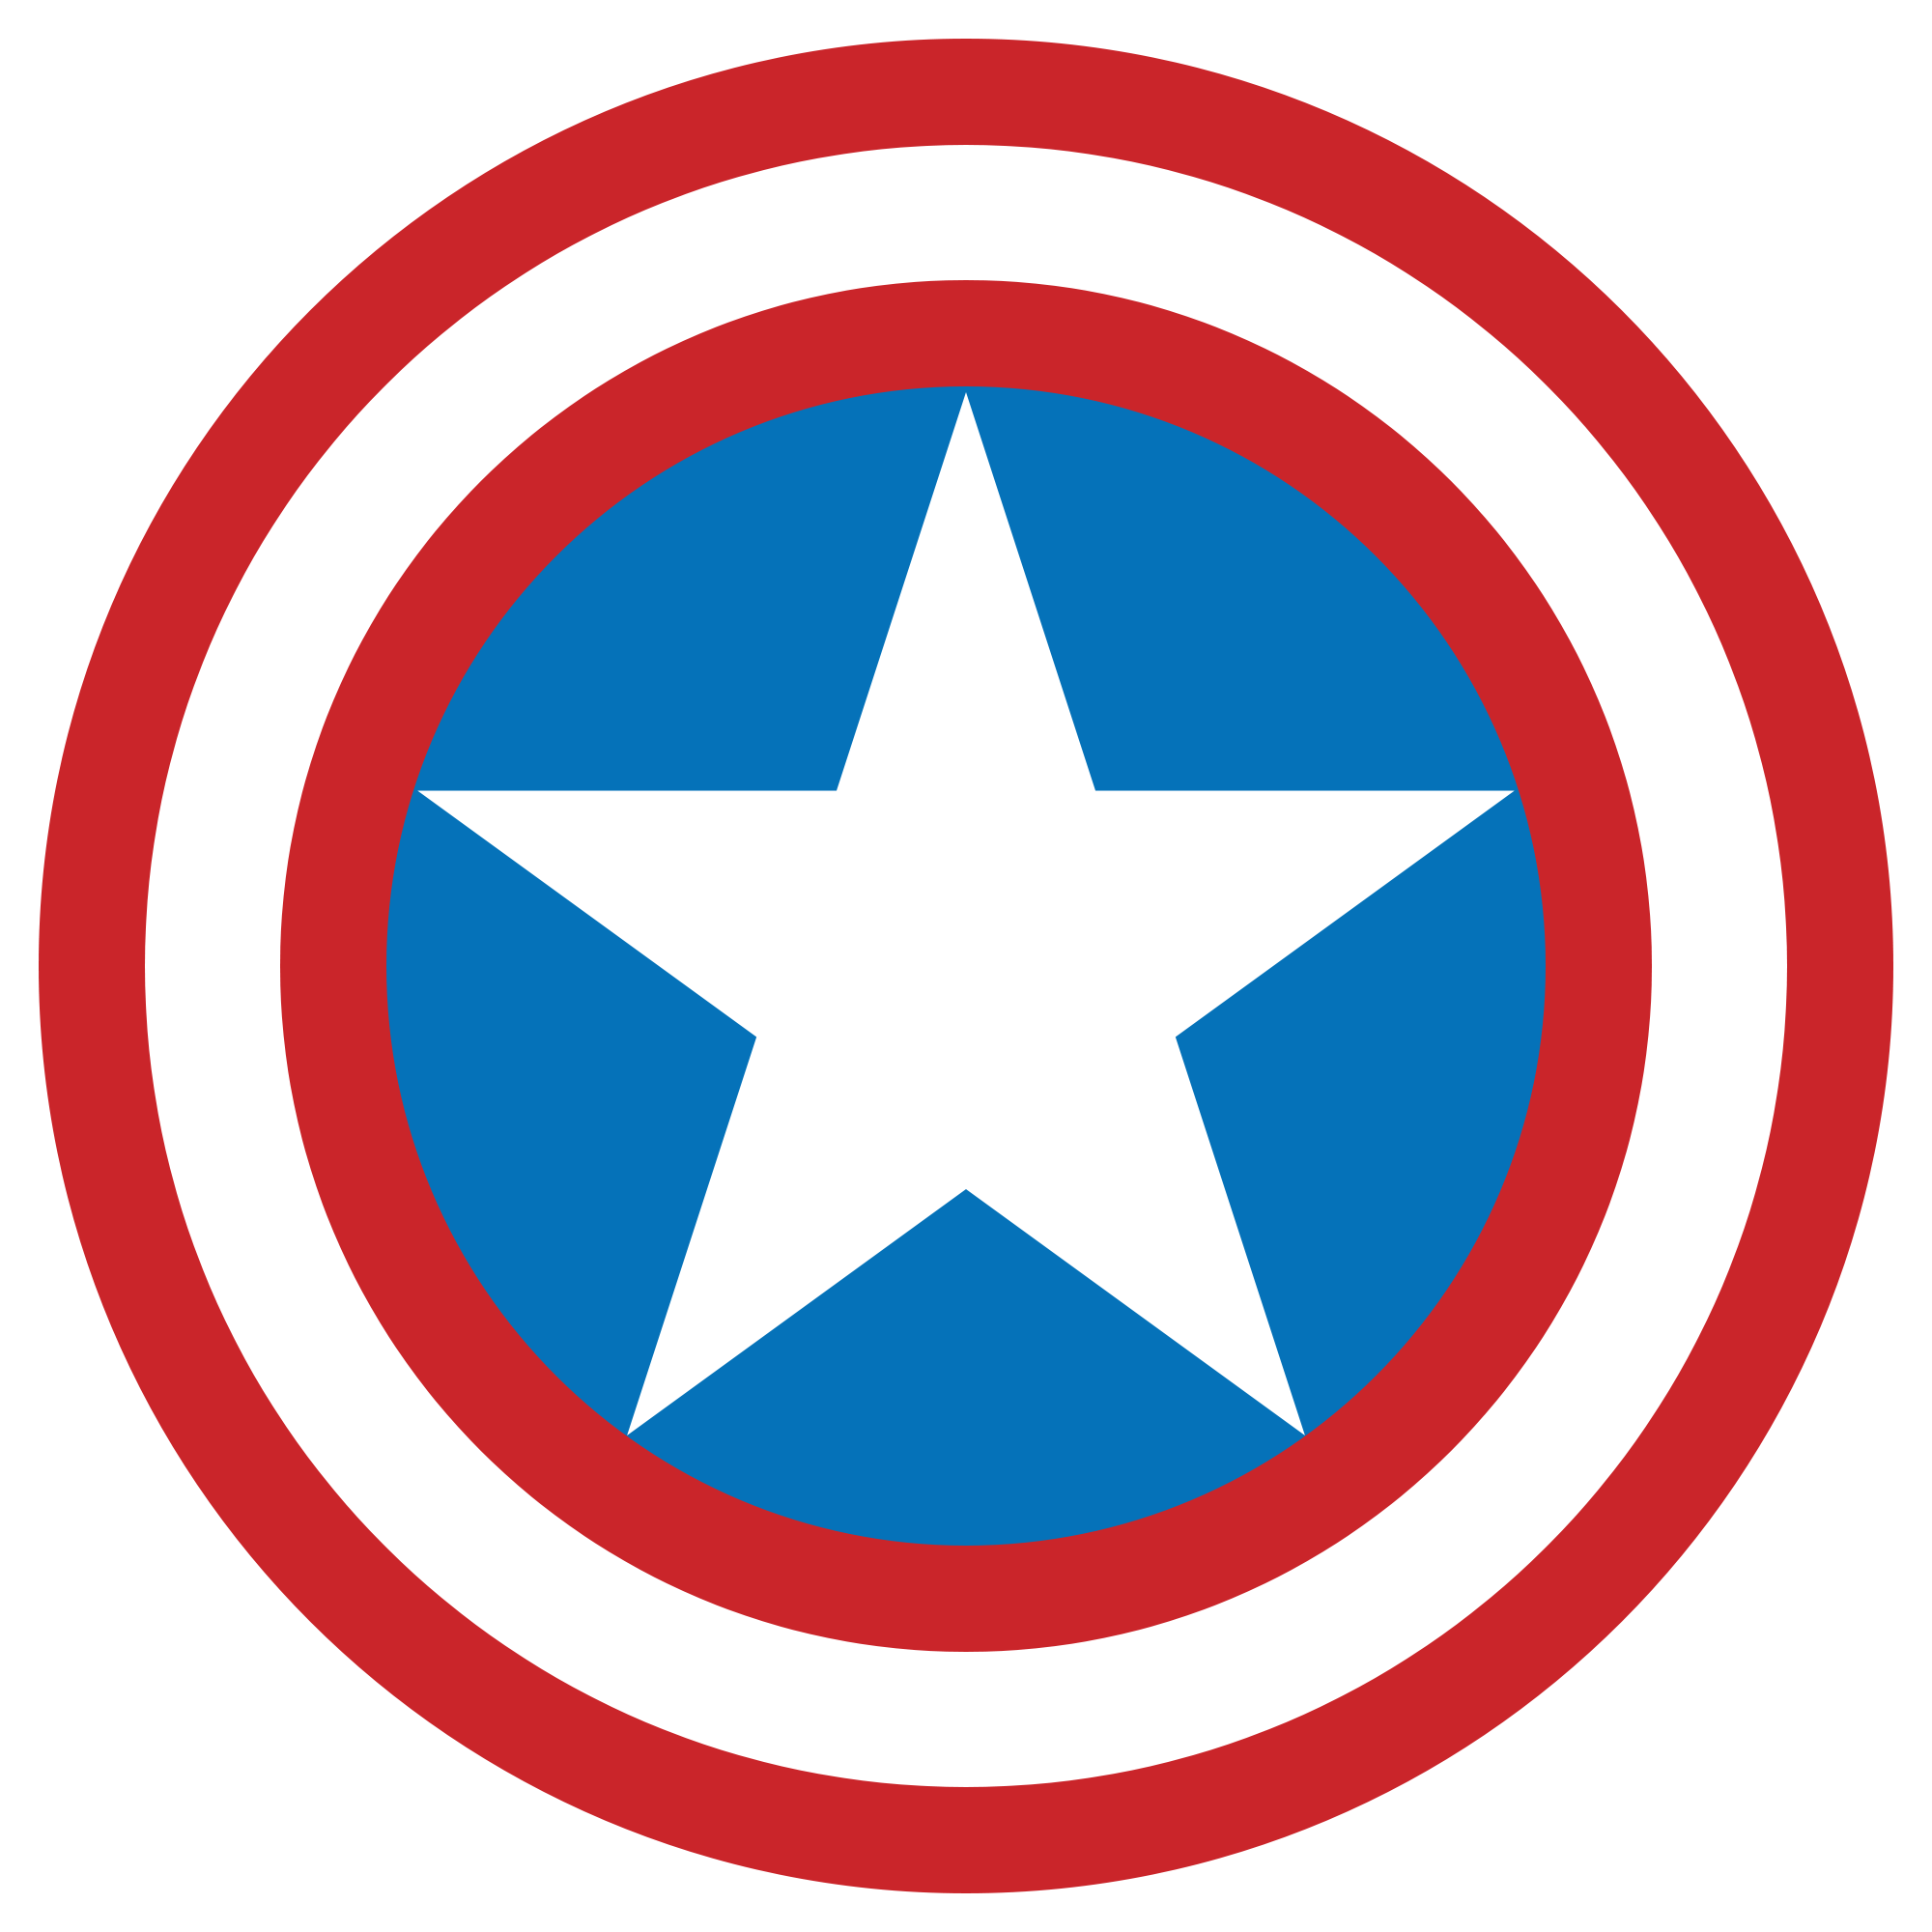 Superhero shield png. S h i e